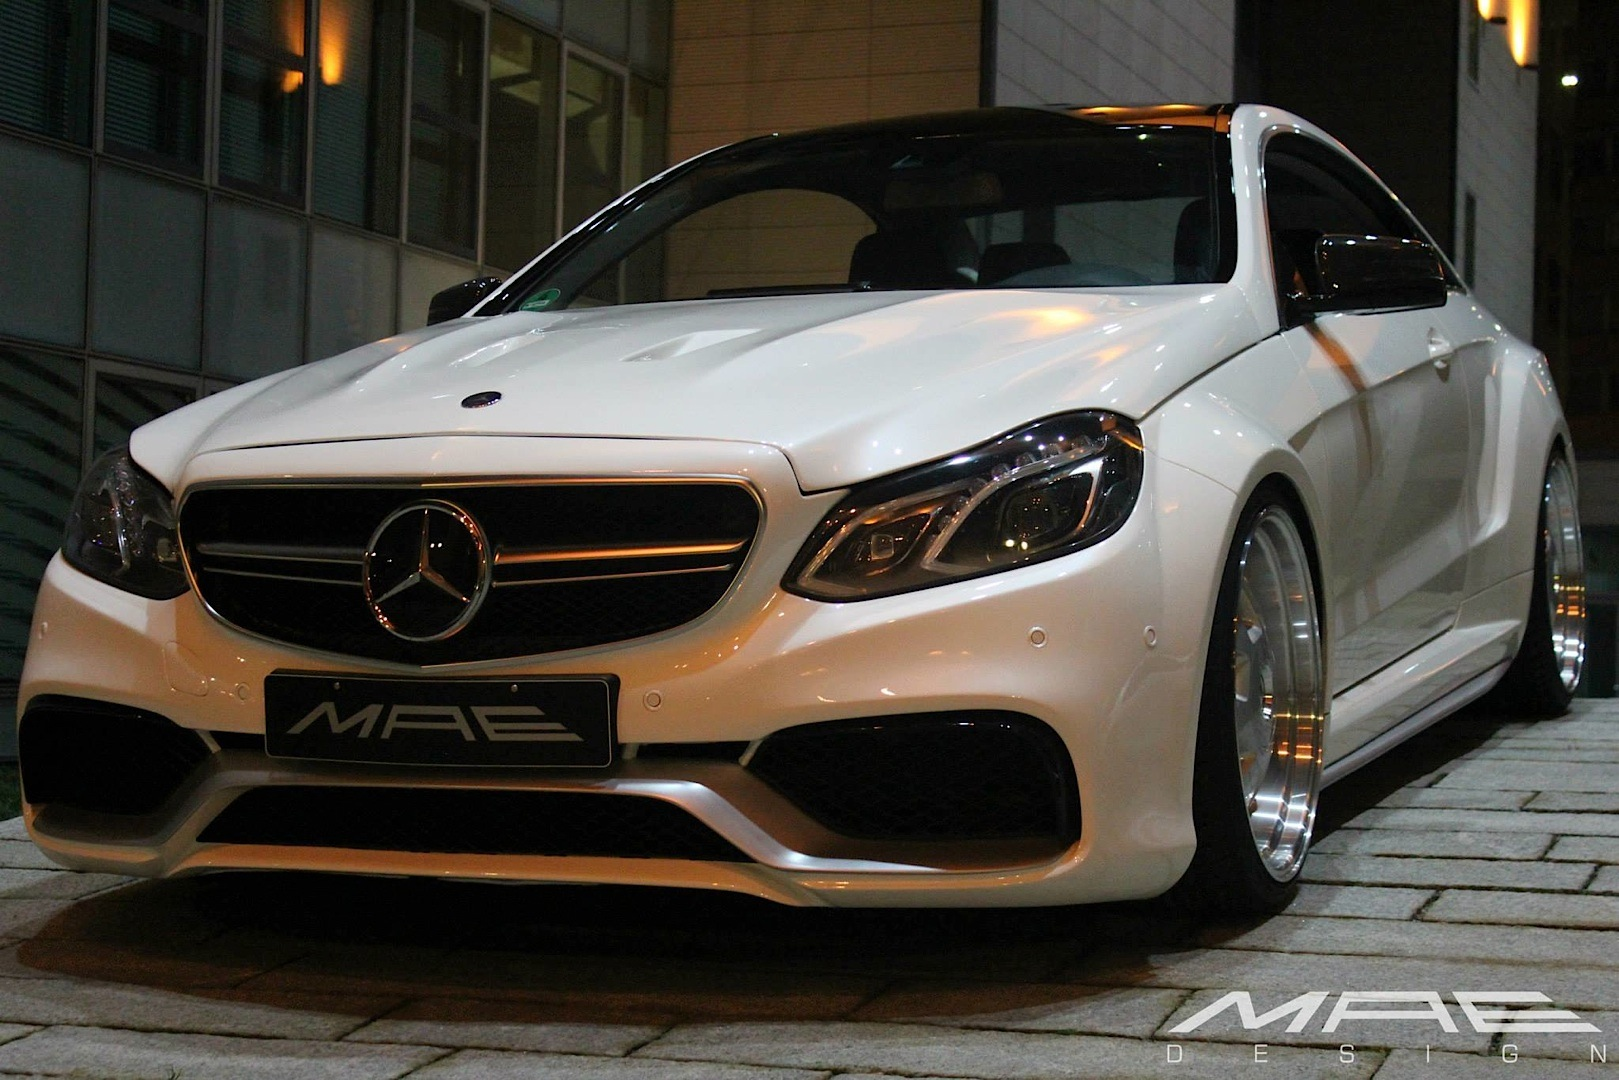 eclass coupe wide bodykit by mae is as clean as a whistle